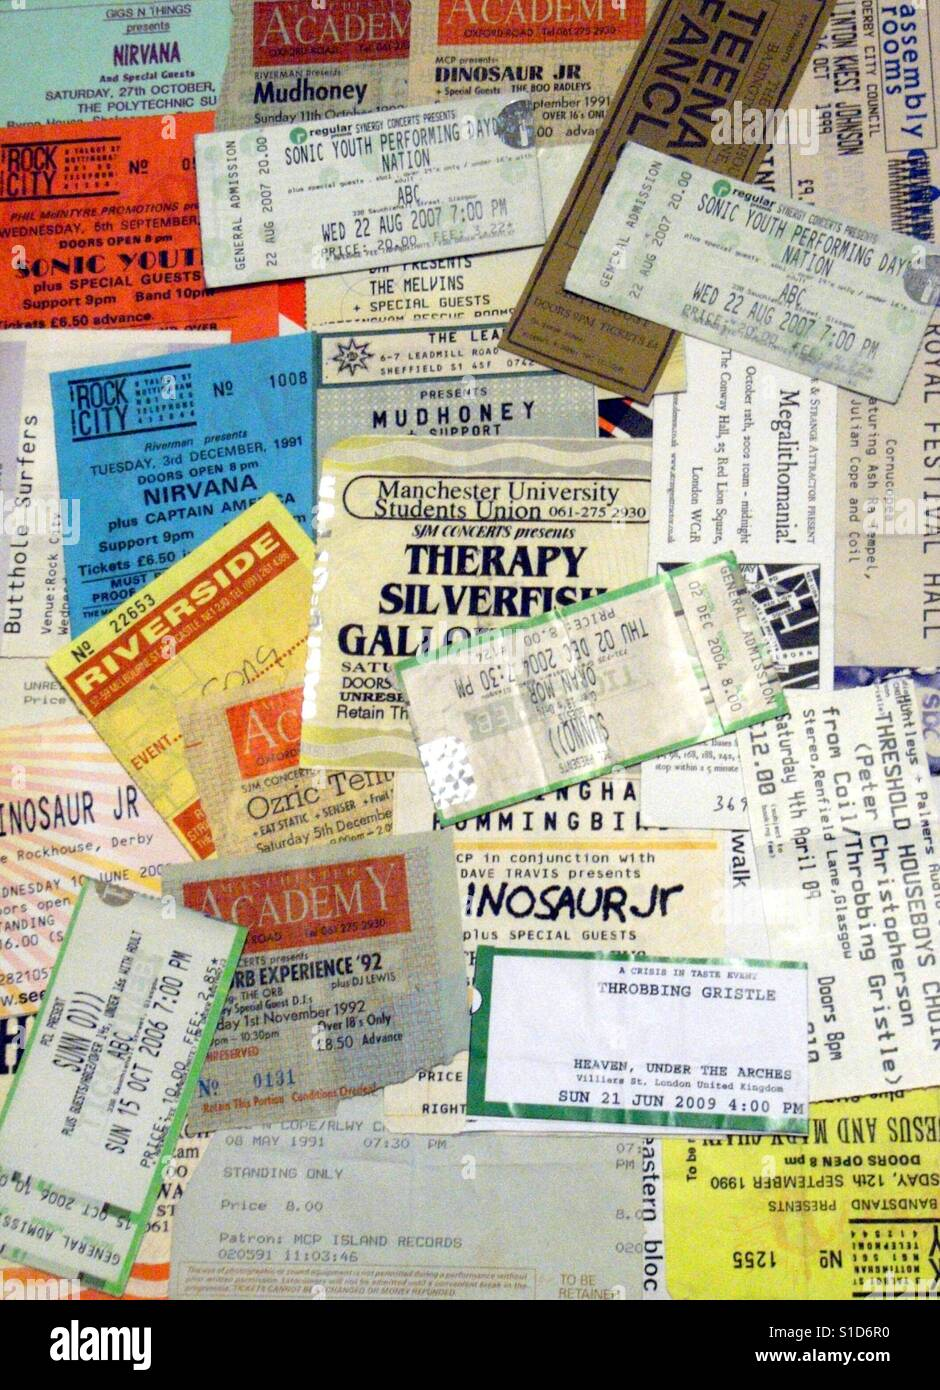 A selection of vintage concert tickets and used ticket stubs. - Stock Image